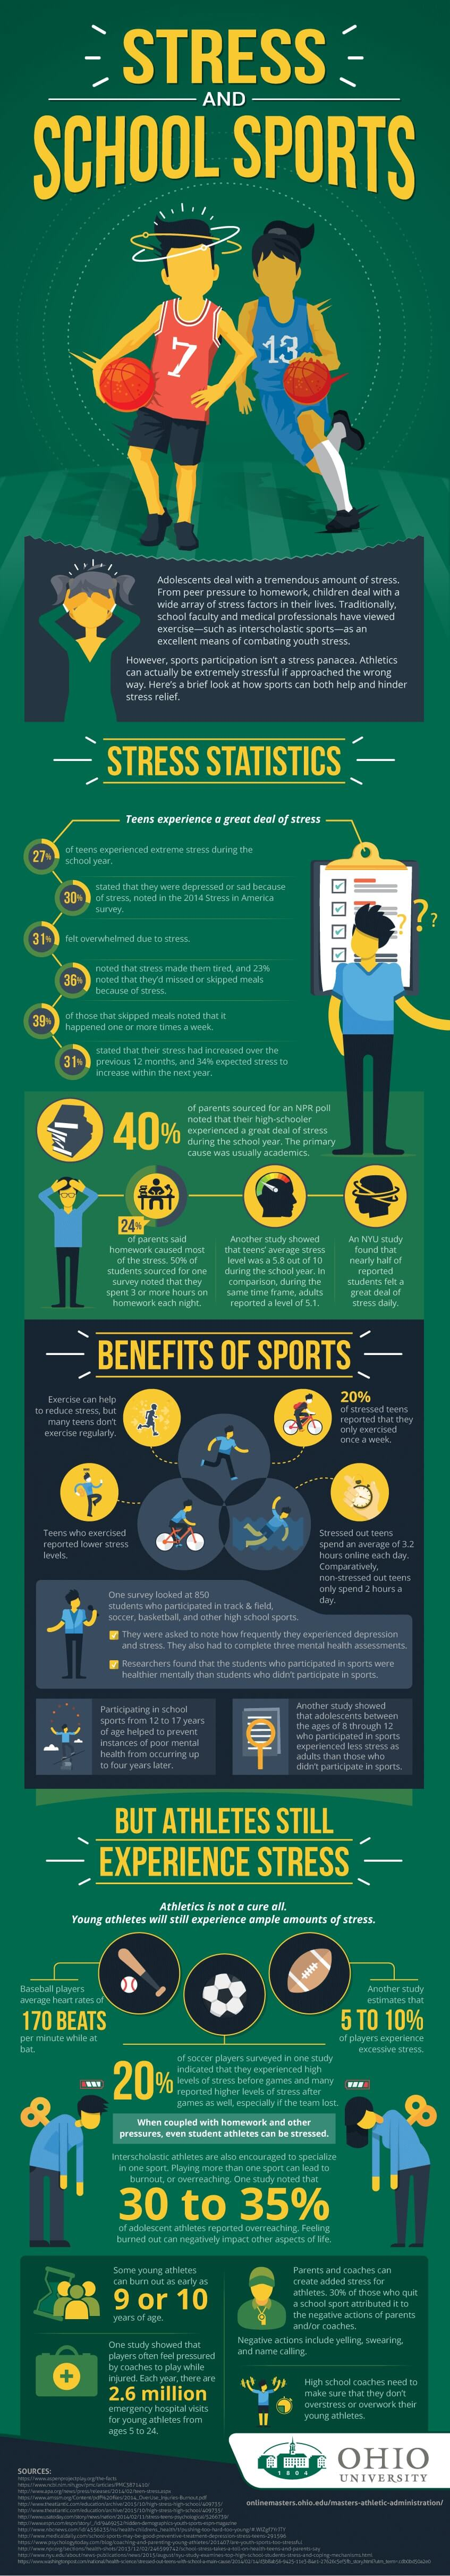 Stress and School sports infographic